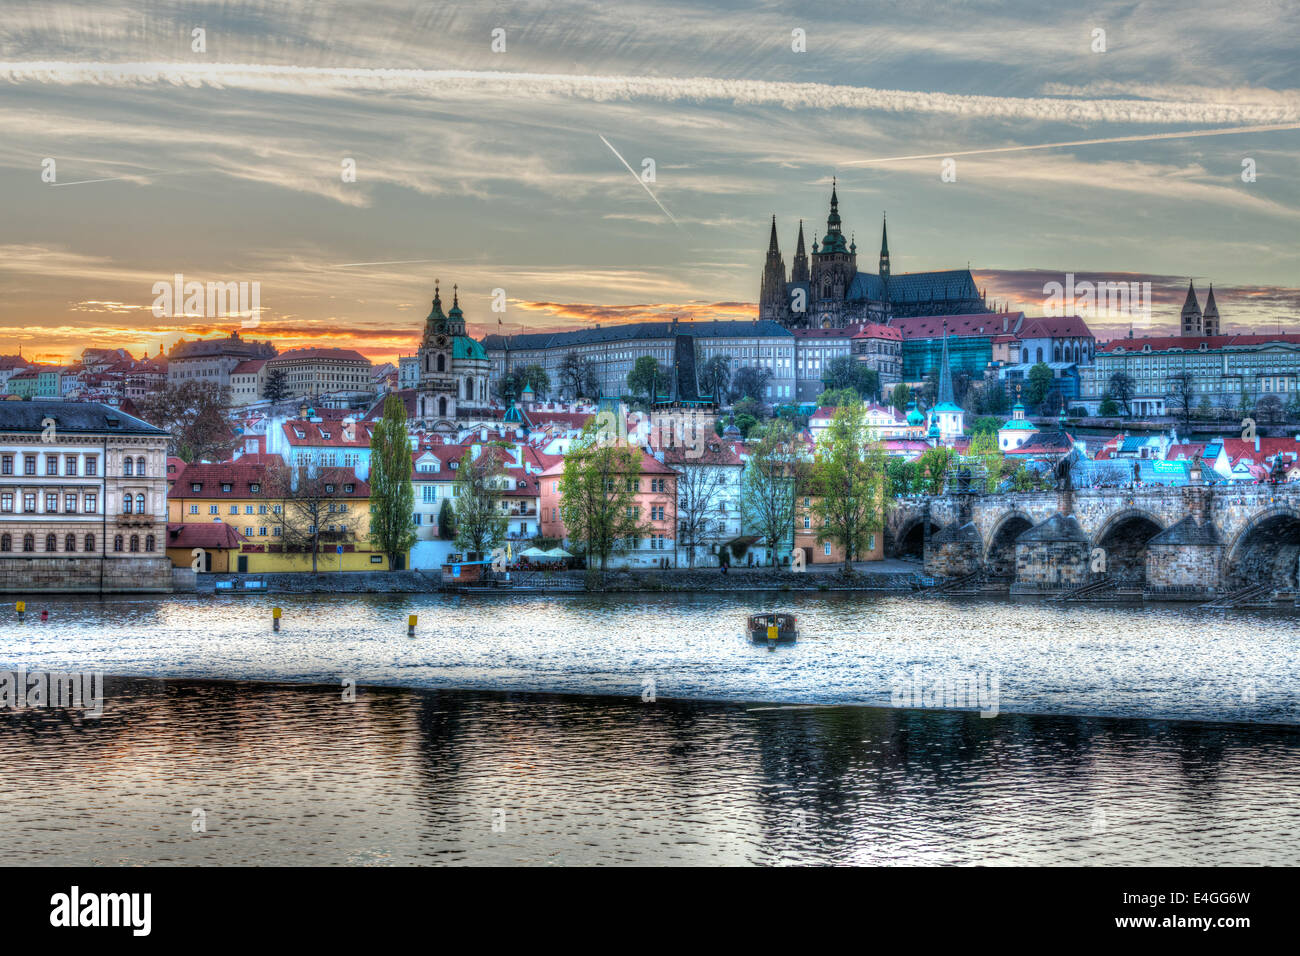 HDR image of view of Charles bridge over Vltava river and Gradchany (Prague Castle) and St. Vitus Cathedral - Stock Image